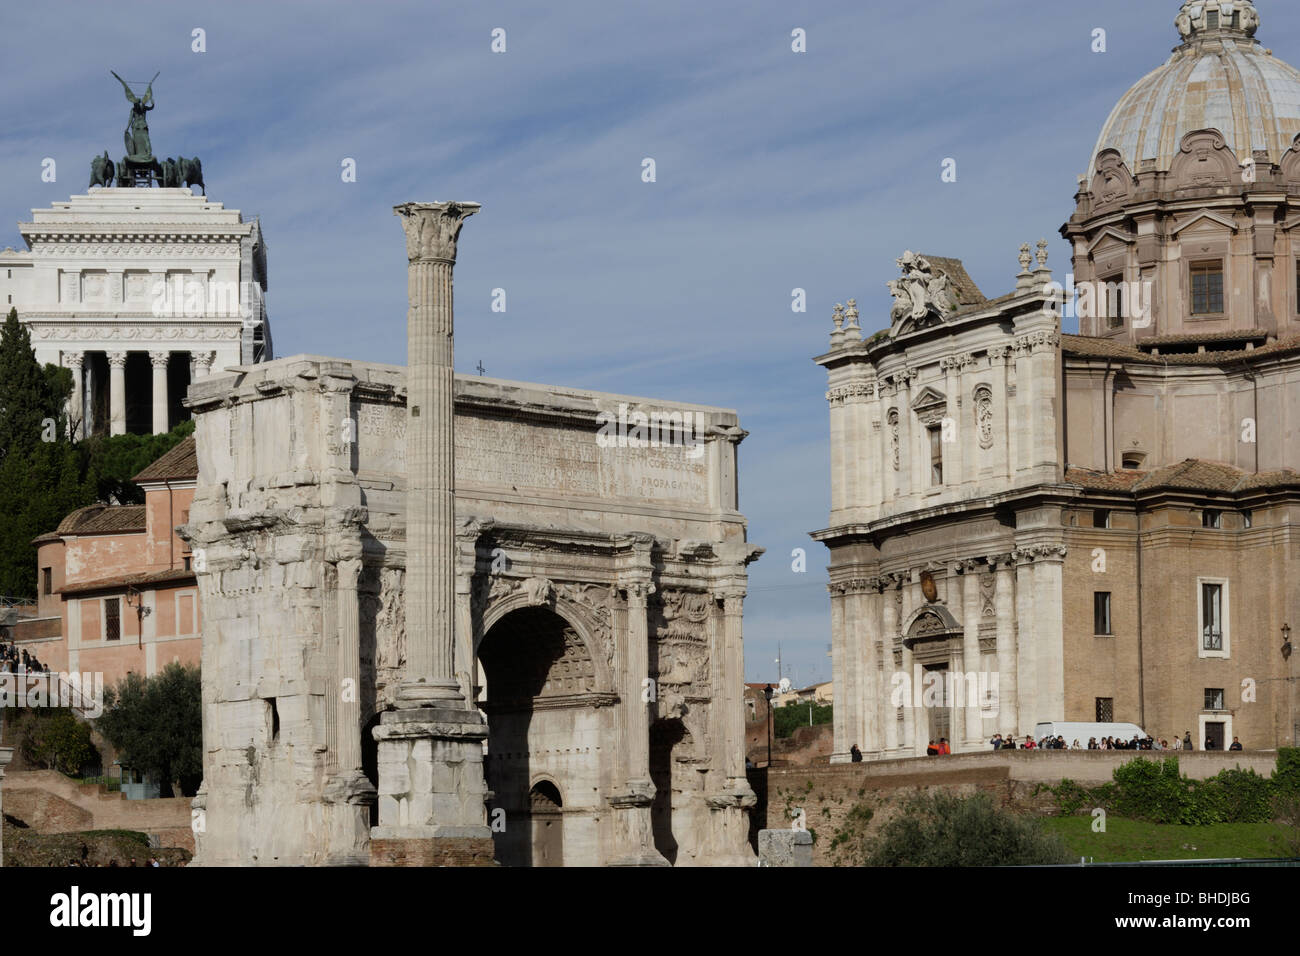 The Forum of ancient Rome Italy - Stock Image